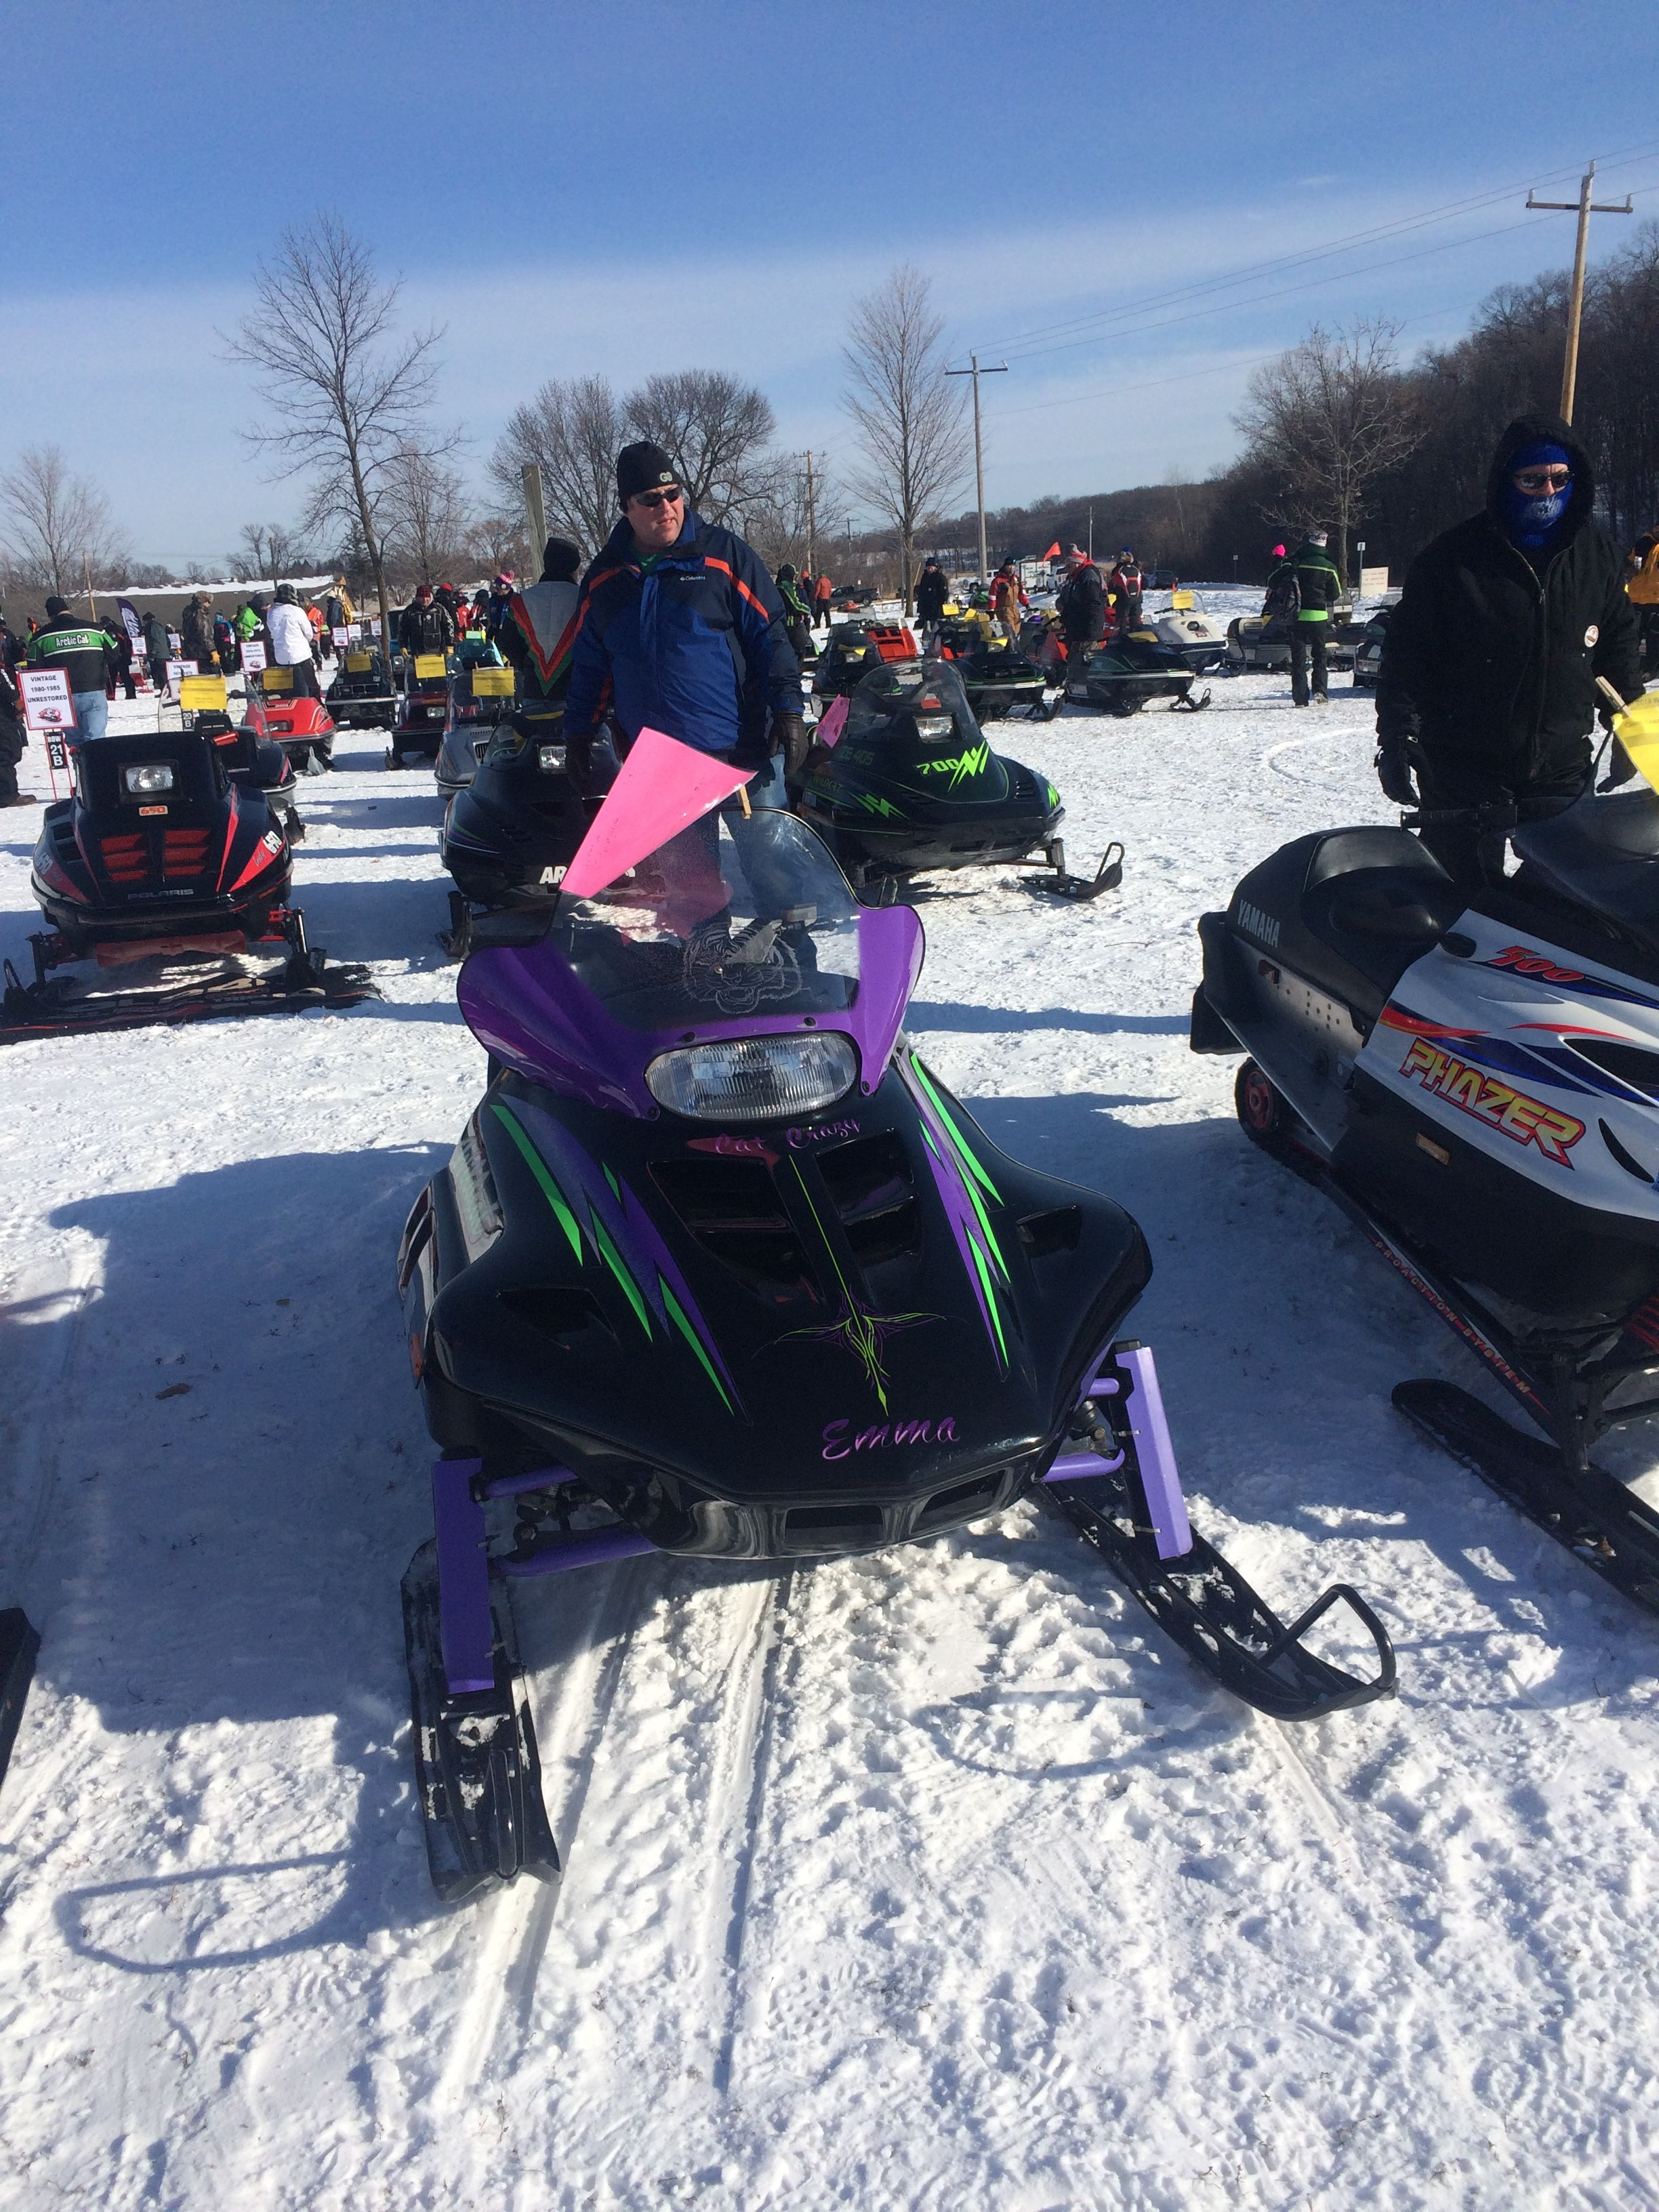 Pin by Shelby Raida on Motorcycles Snowmobile, Sleds